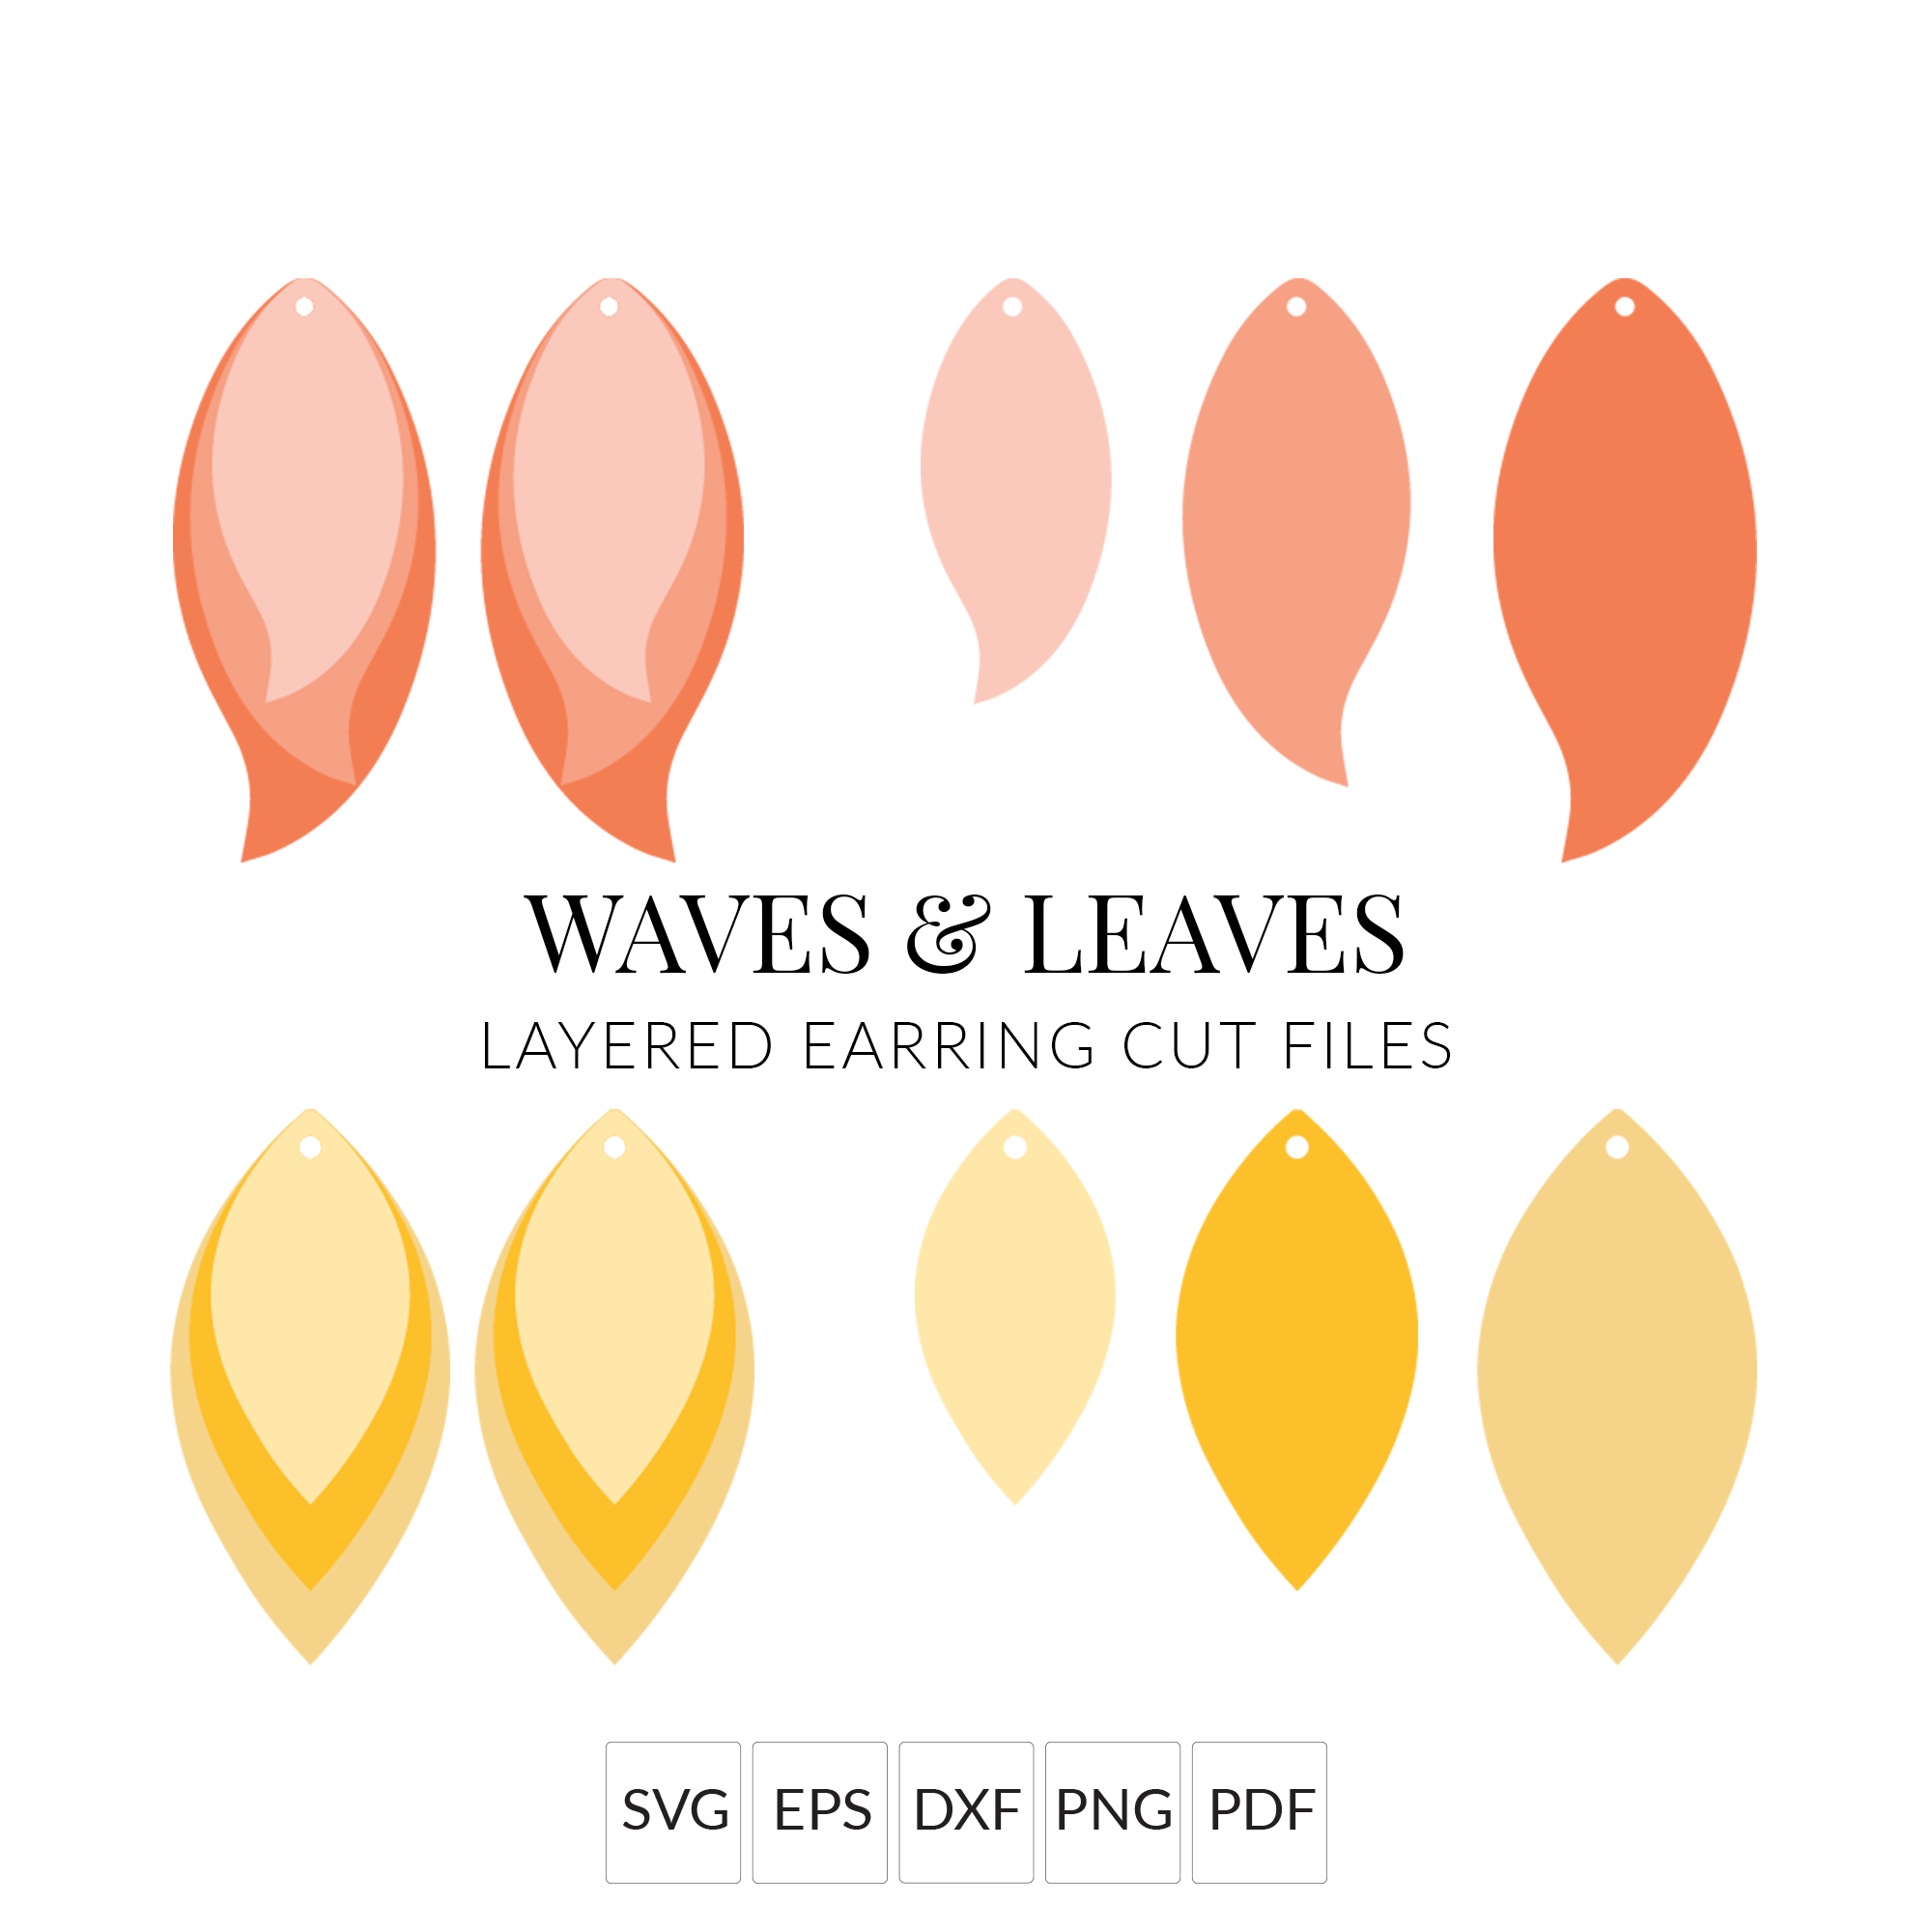 Waves & Leaves Stacked Earrings SVG Cut File for Cricut & Silhouette